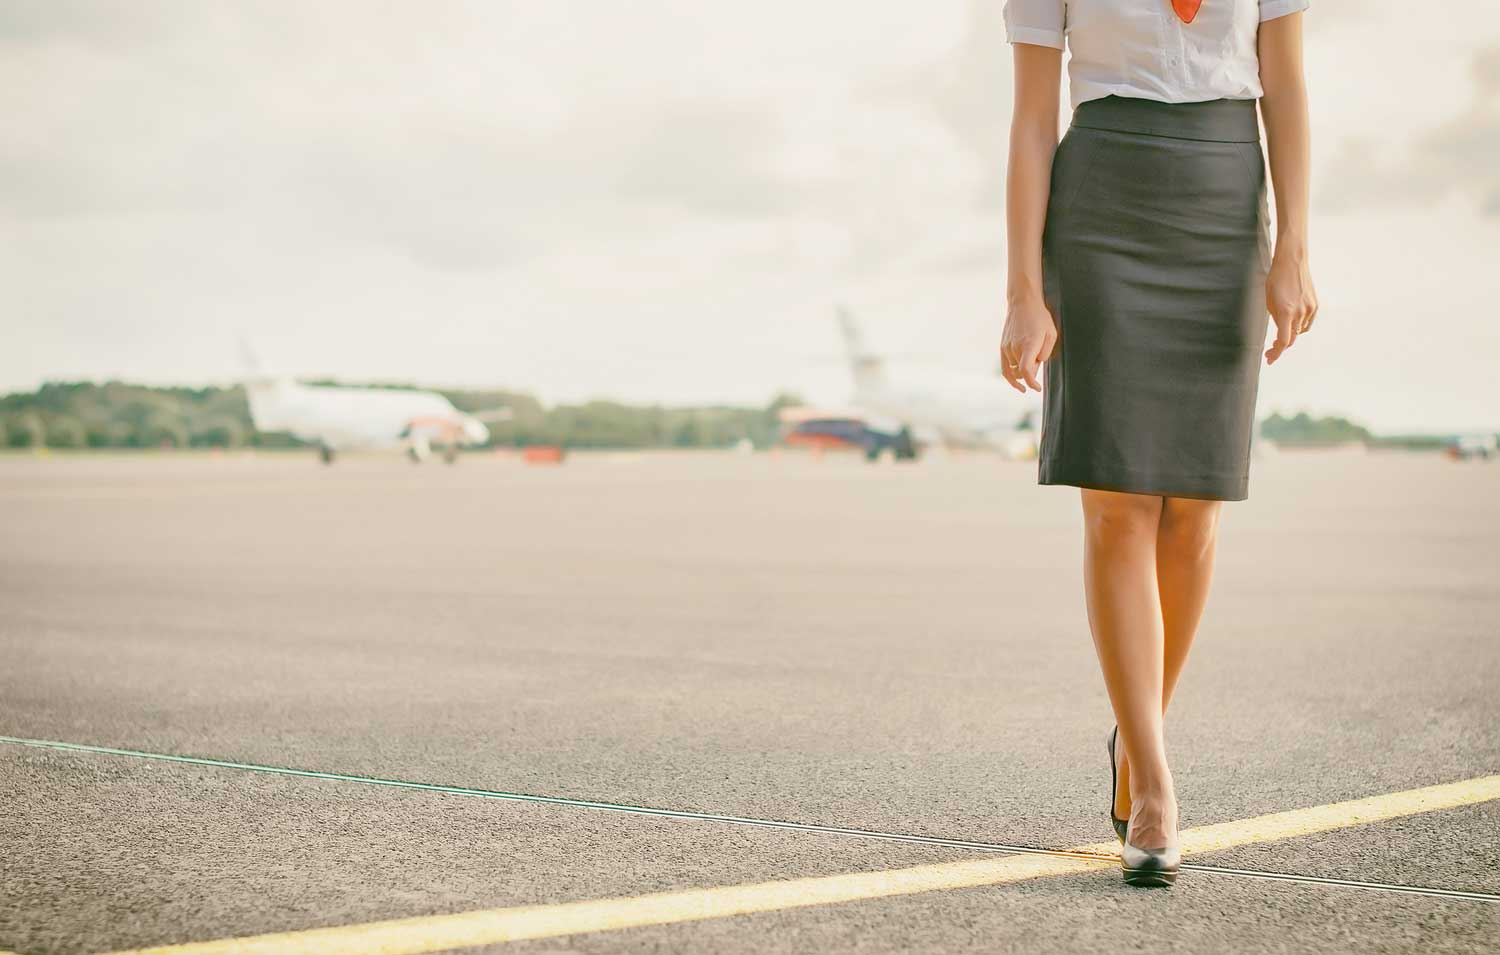 Looking to become a Cabin Attendant in Private Aviation -